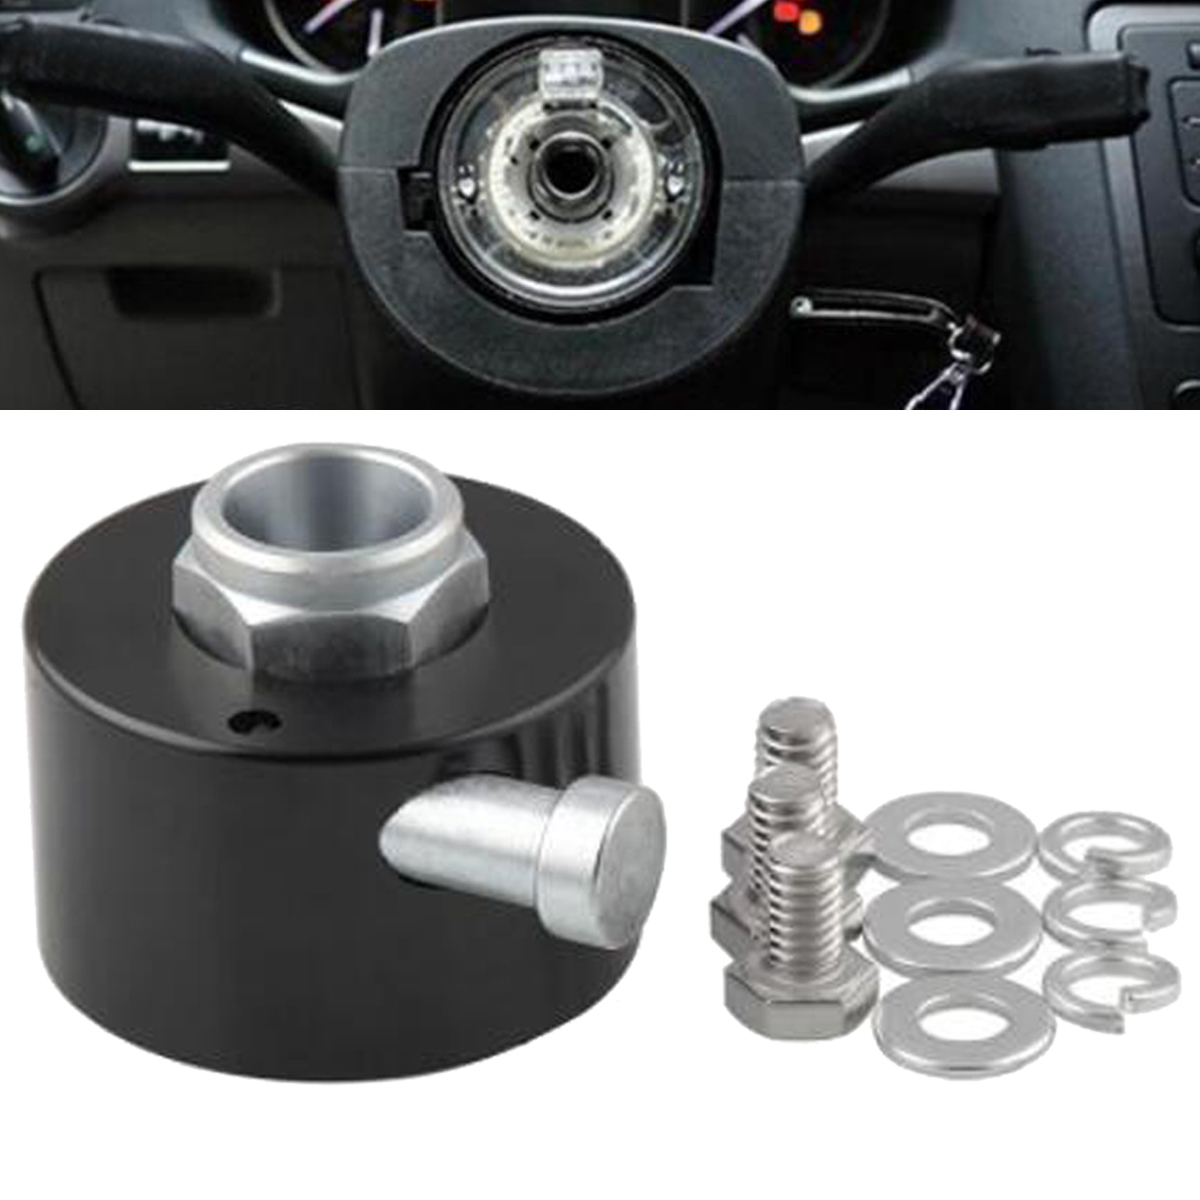 Universal Car Steering Wheel Quick Release Disconnect Hub 3/4